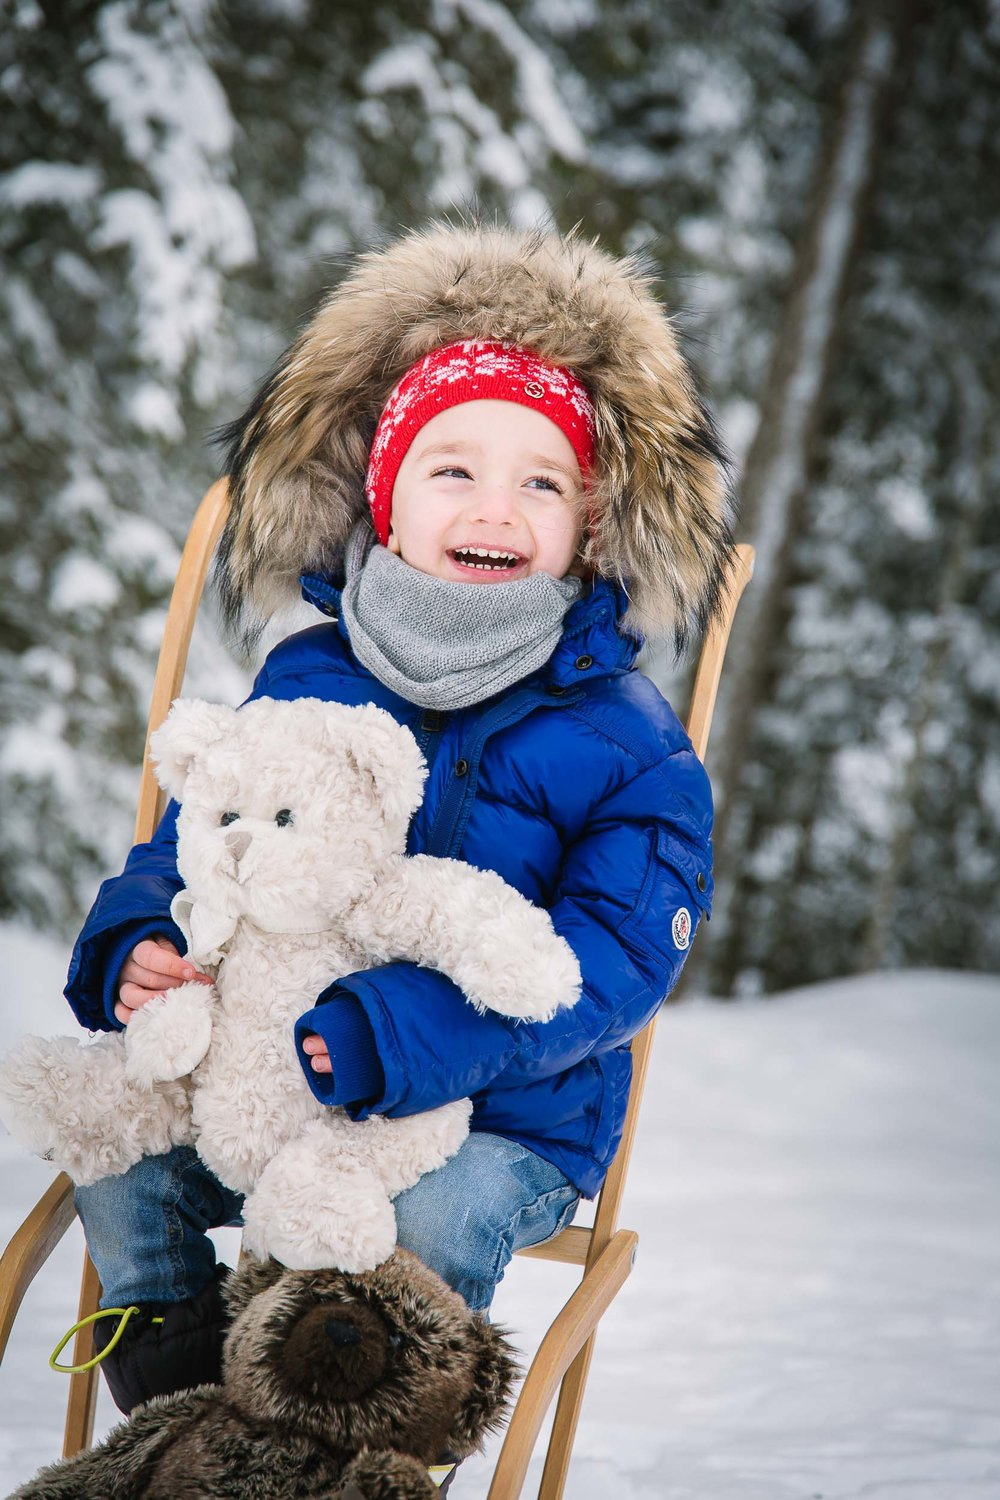 Props and toys make for a fun family shoot in the snow.